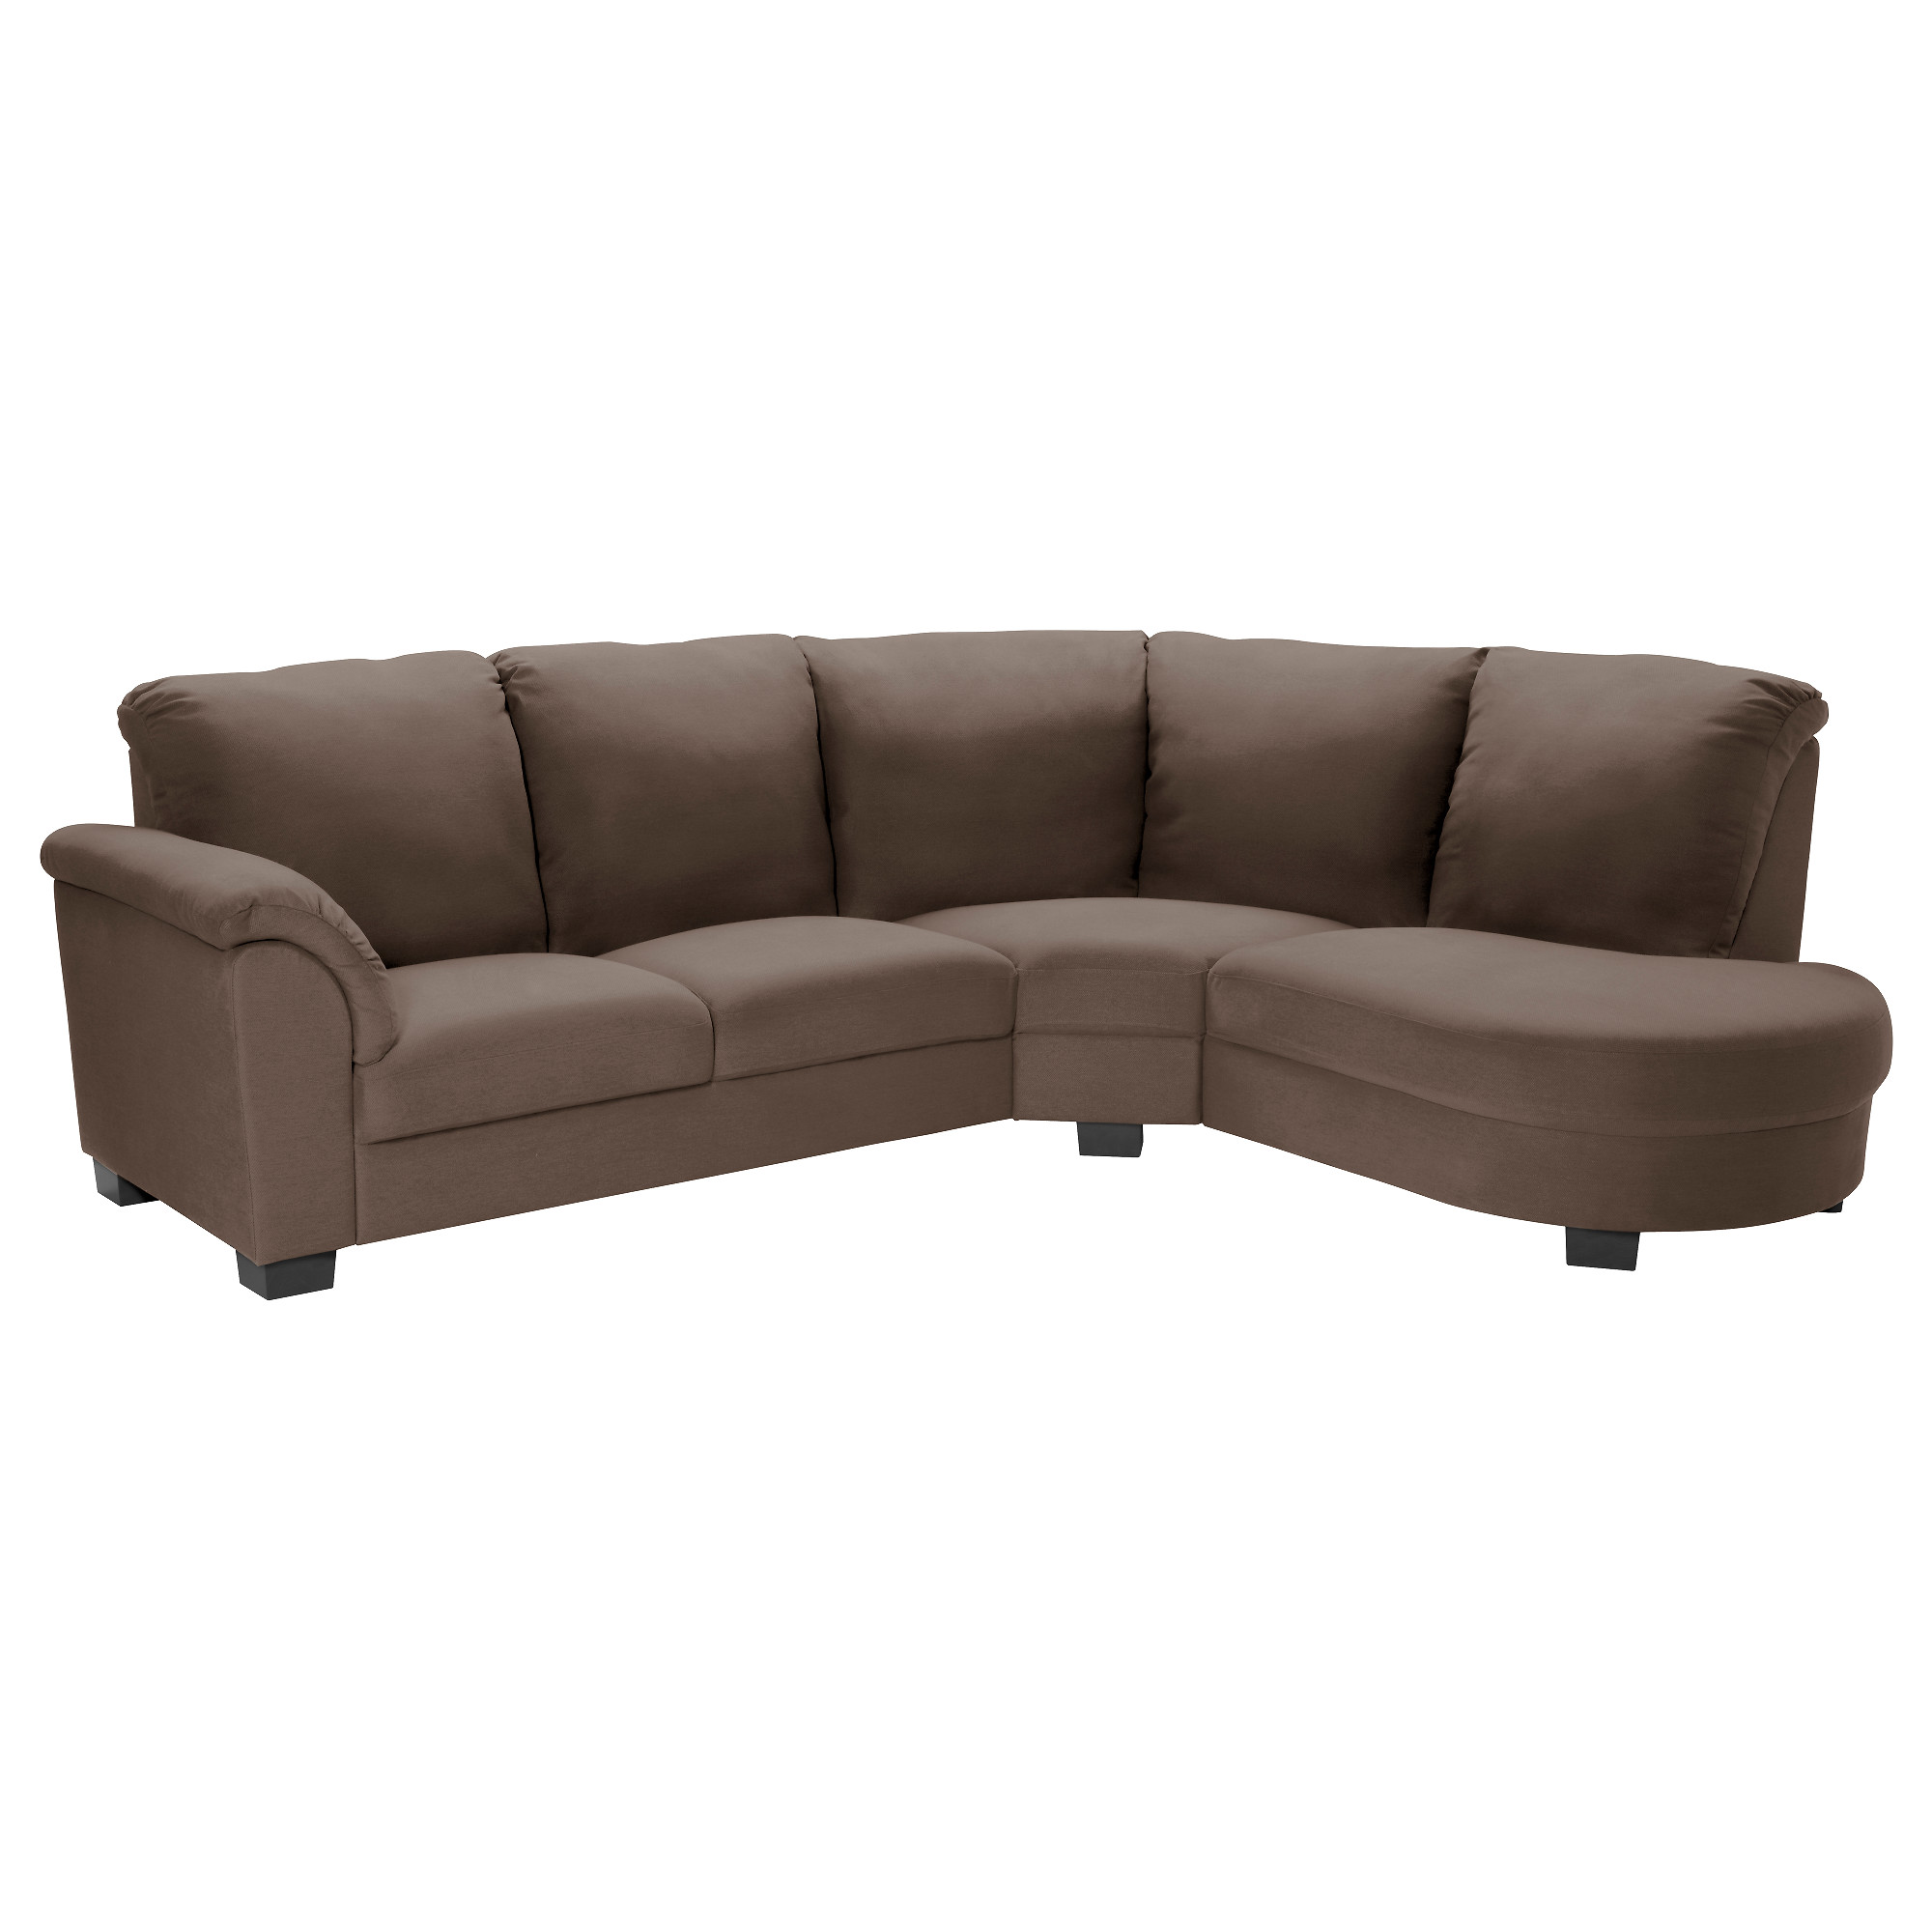 Elegant sectional couches for sale with cushions and wooden legs for home furniture ideas with cheap sectional couches for sale